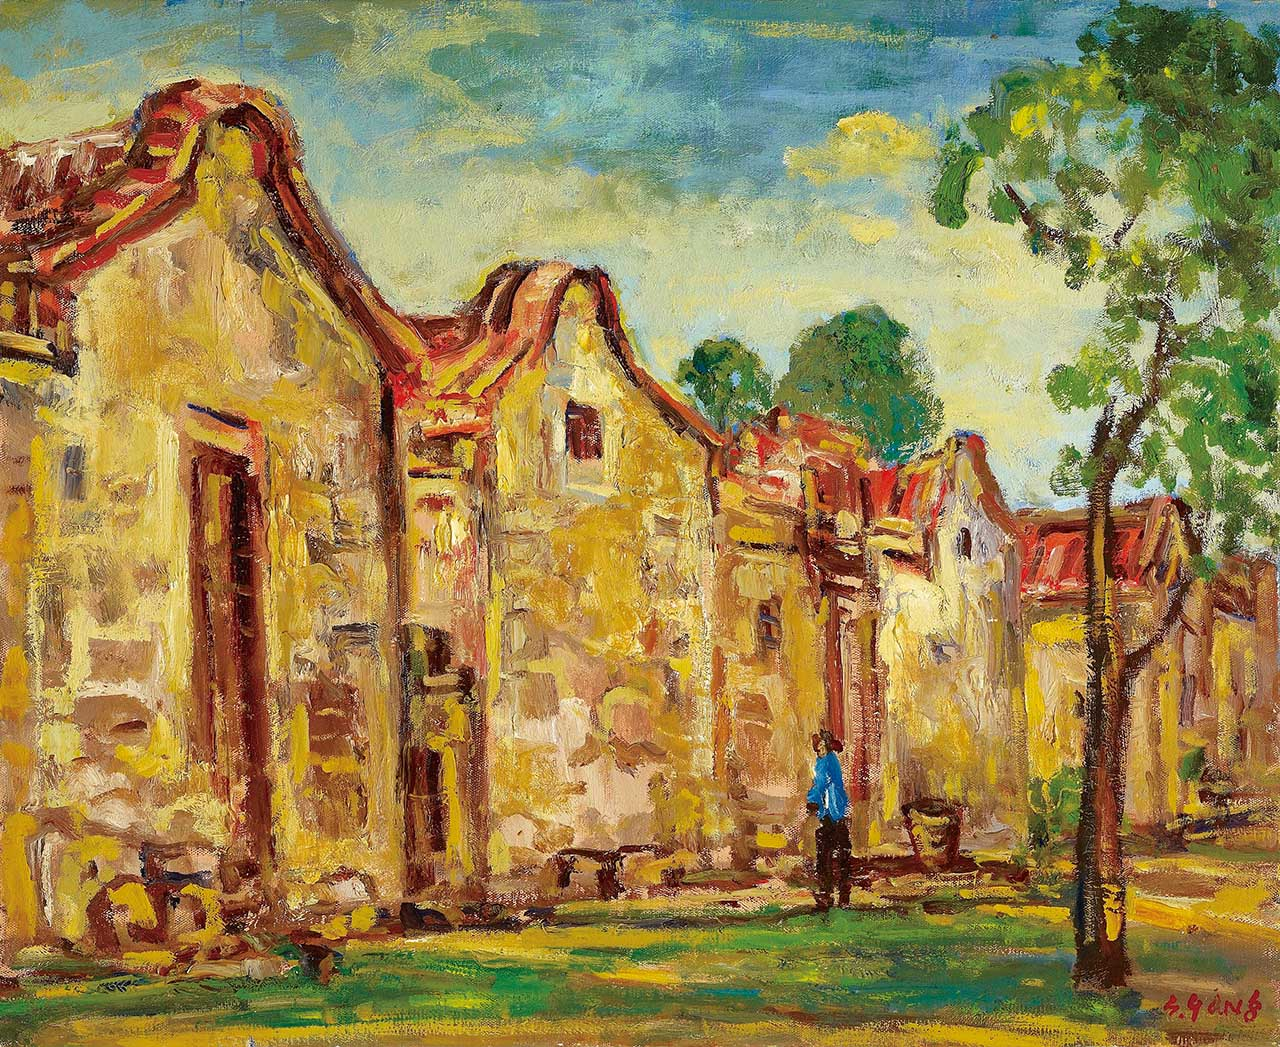 Old House in Penghu Oil on canvas 65x80 cm